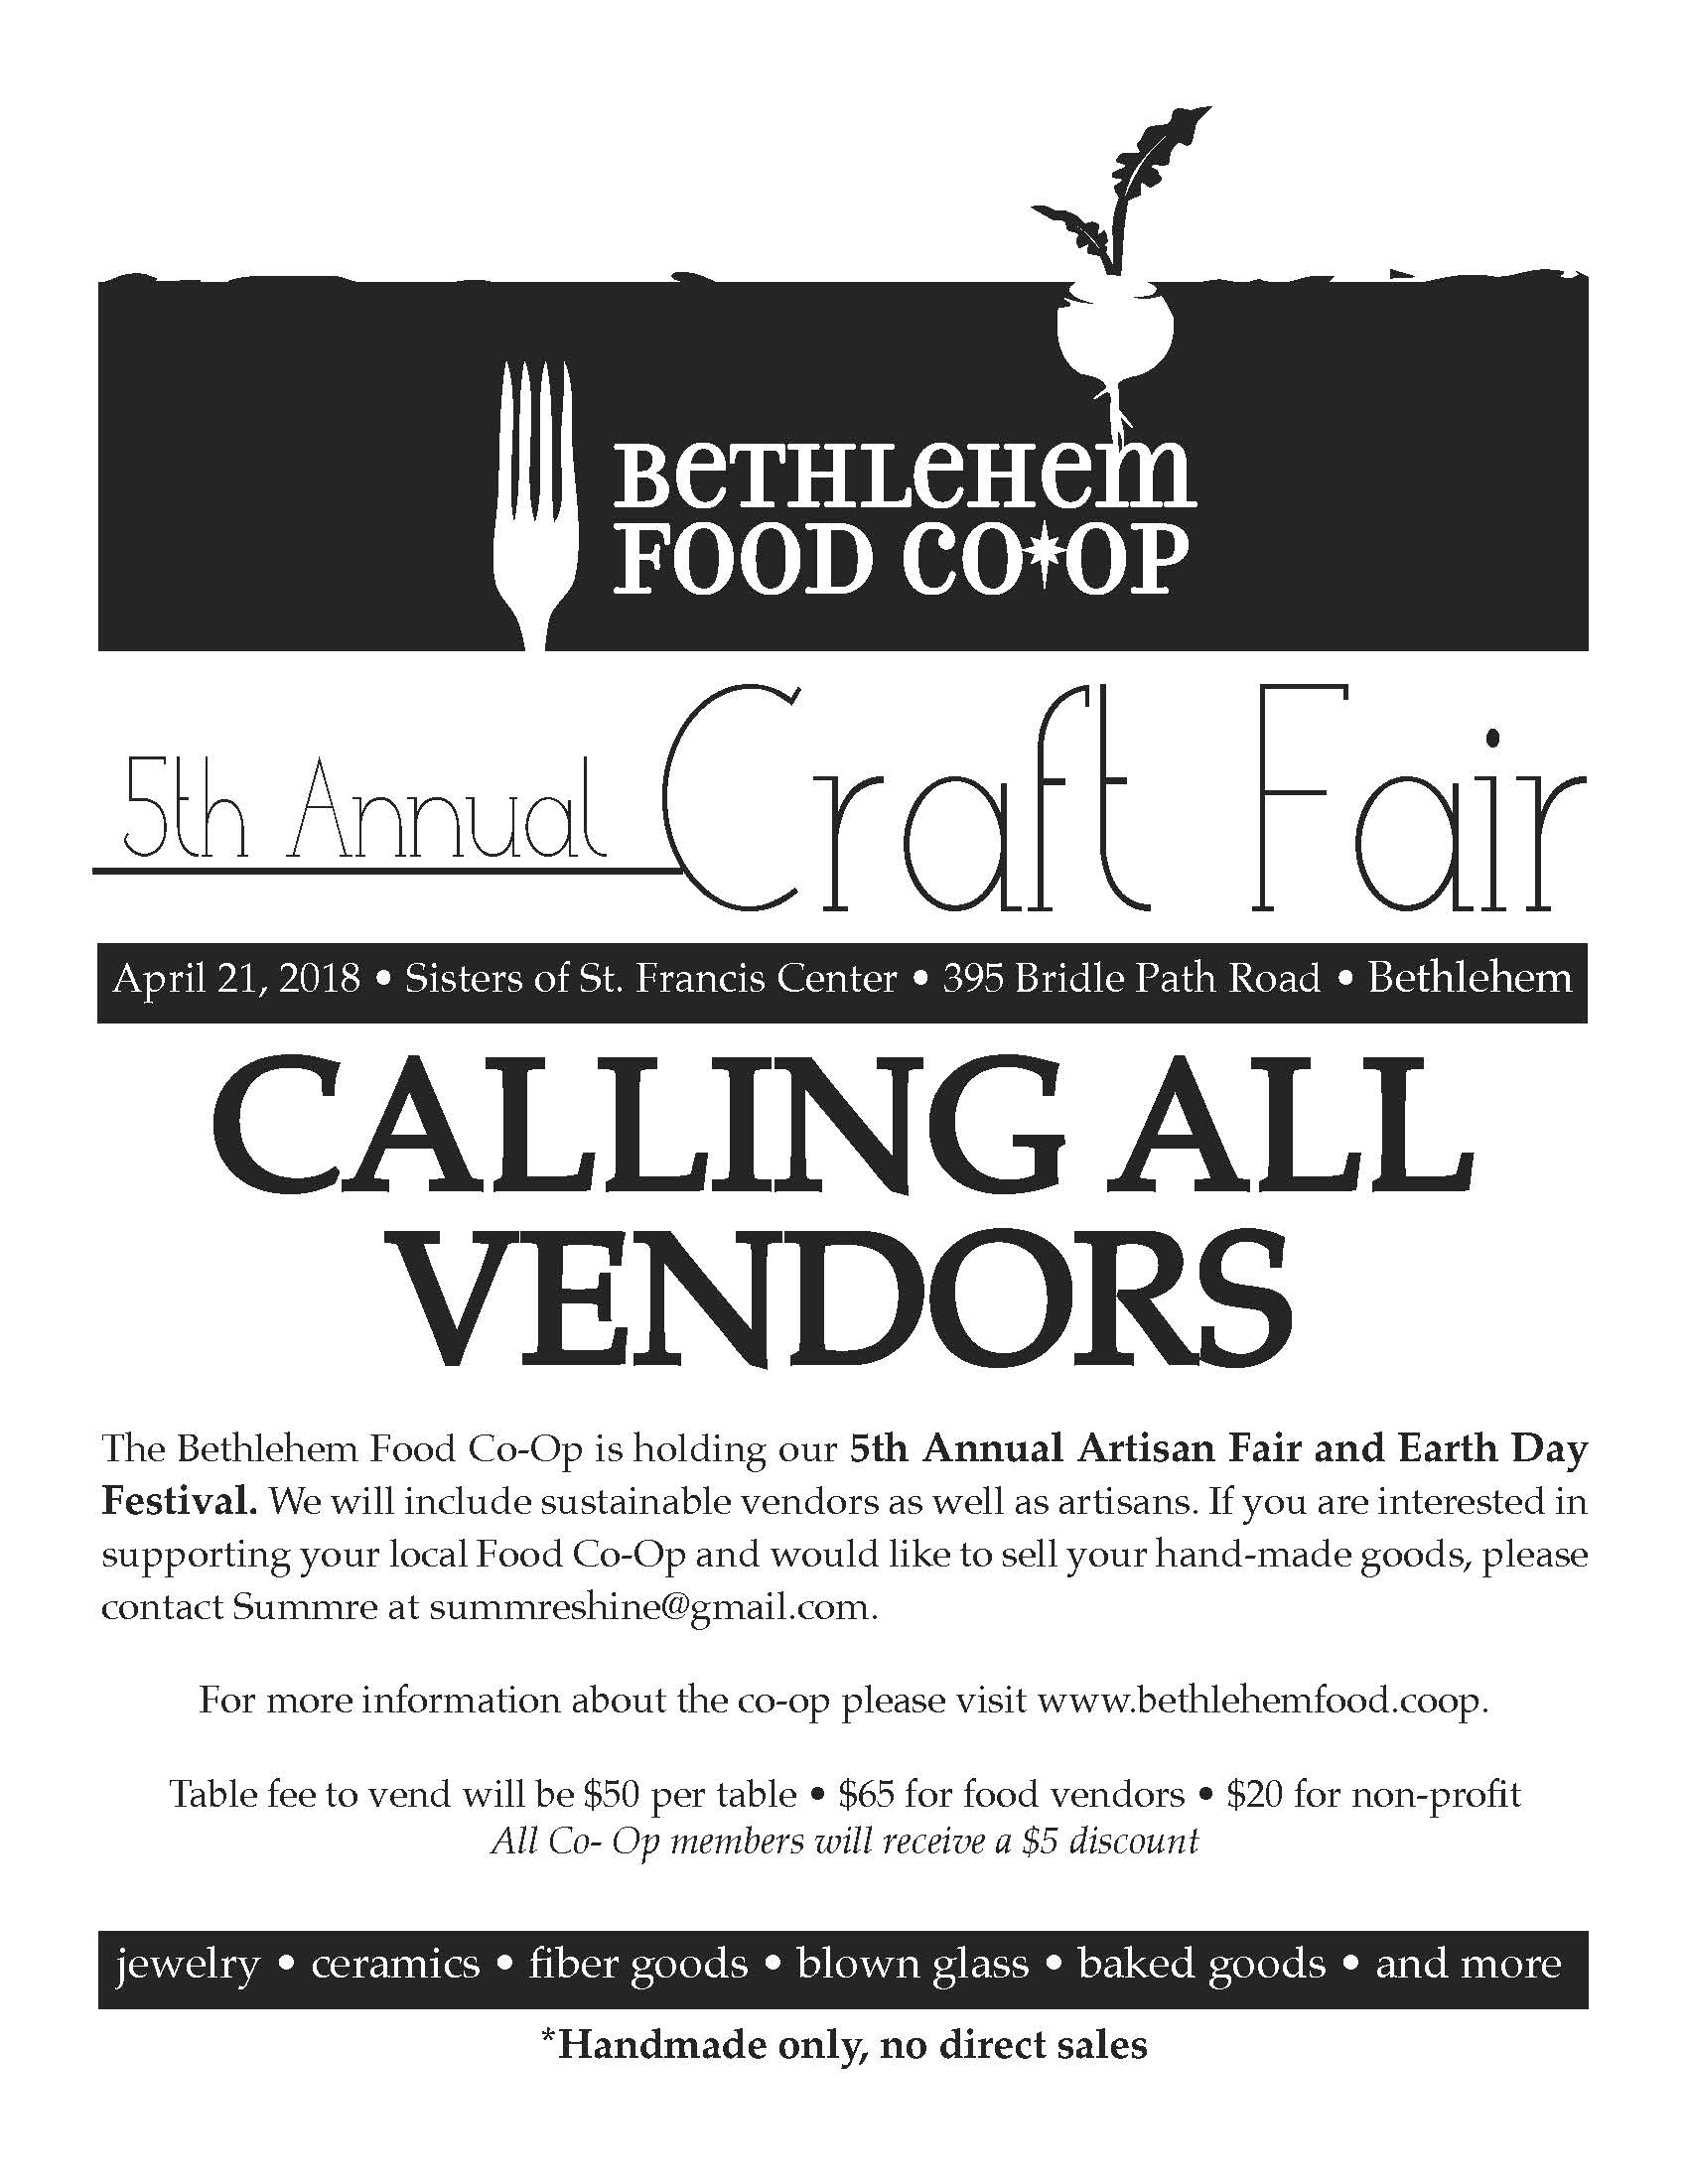 BFC_Craft_Fair_-_CallingAllVendors_2018.jpg